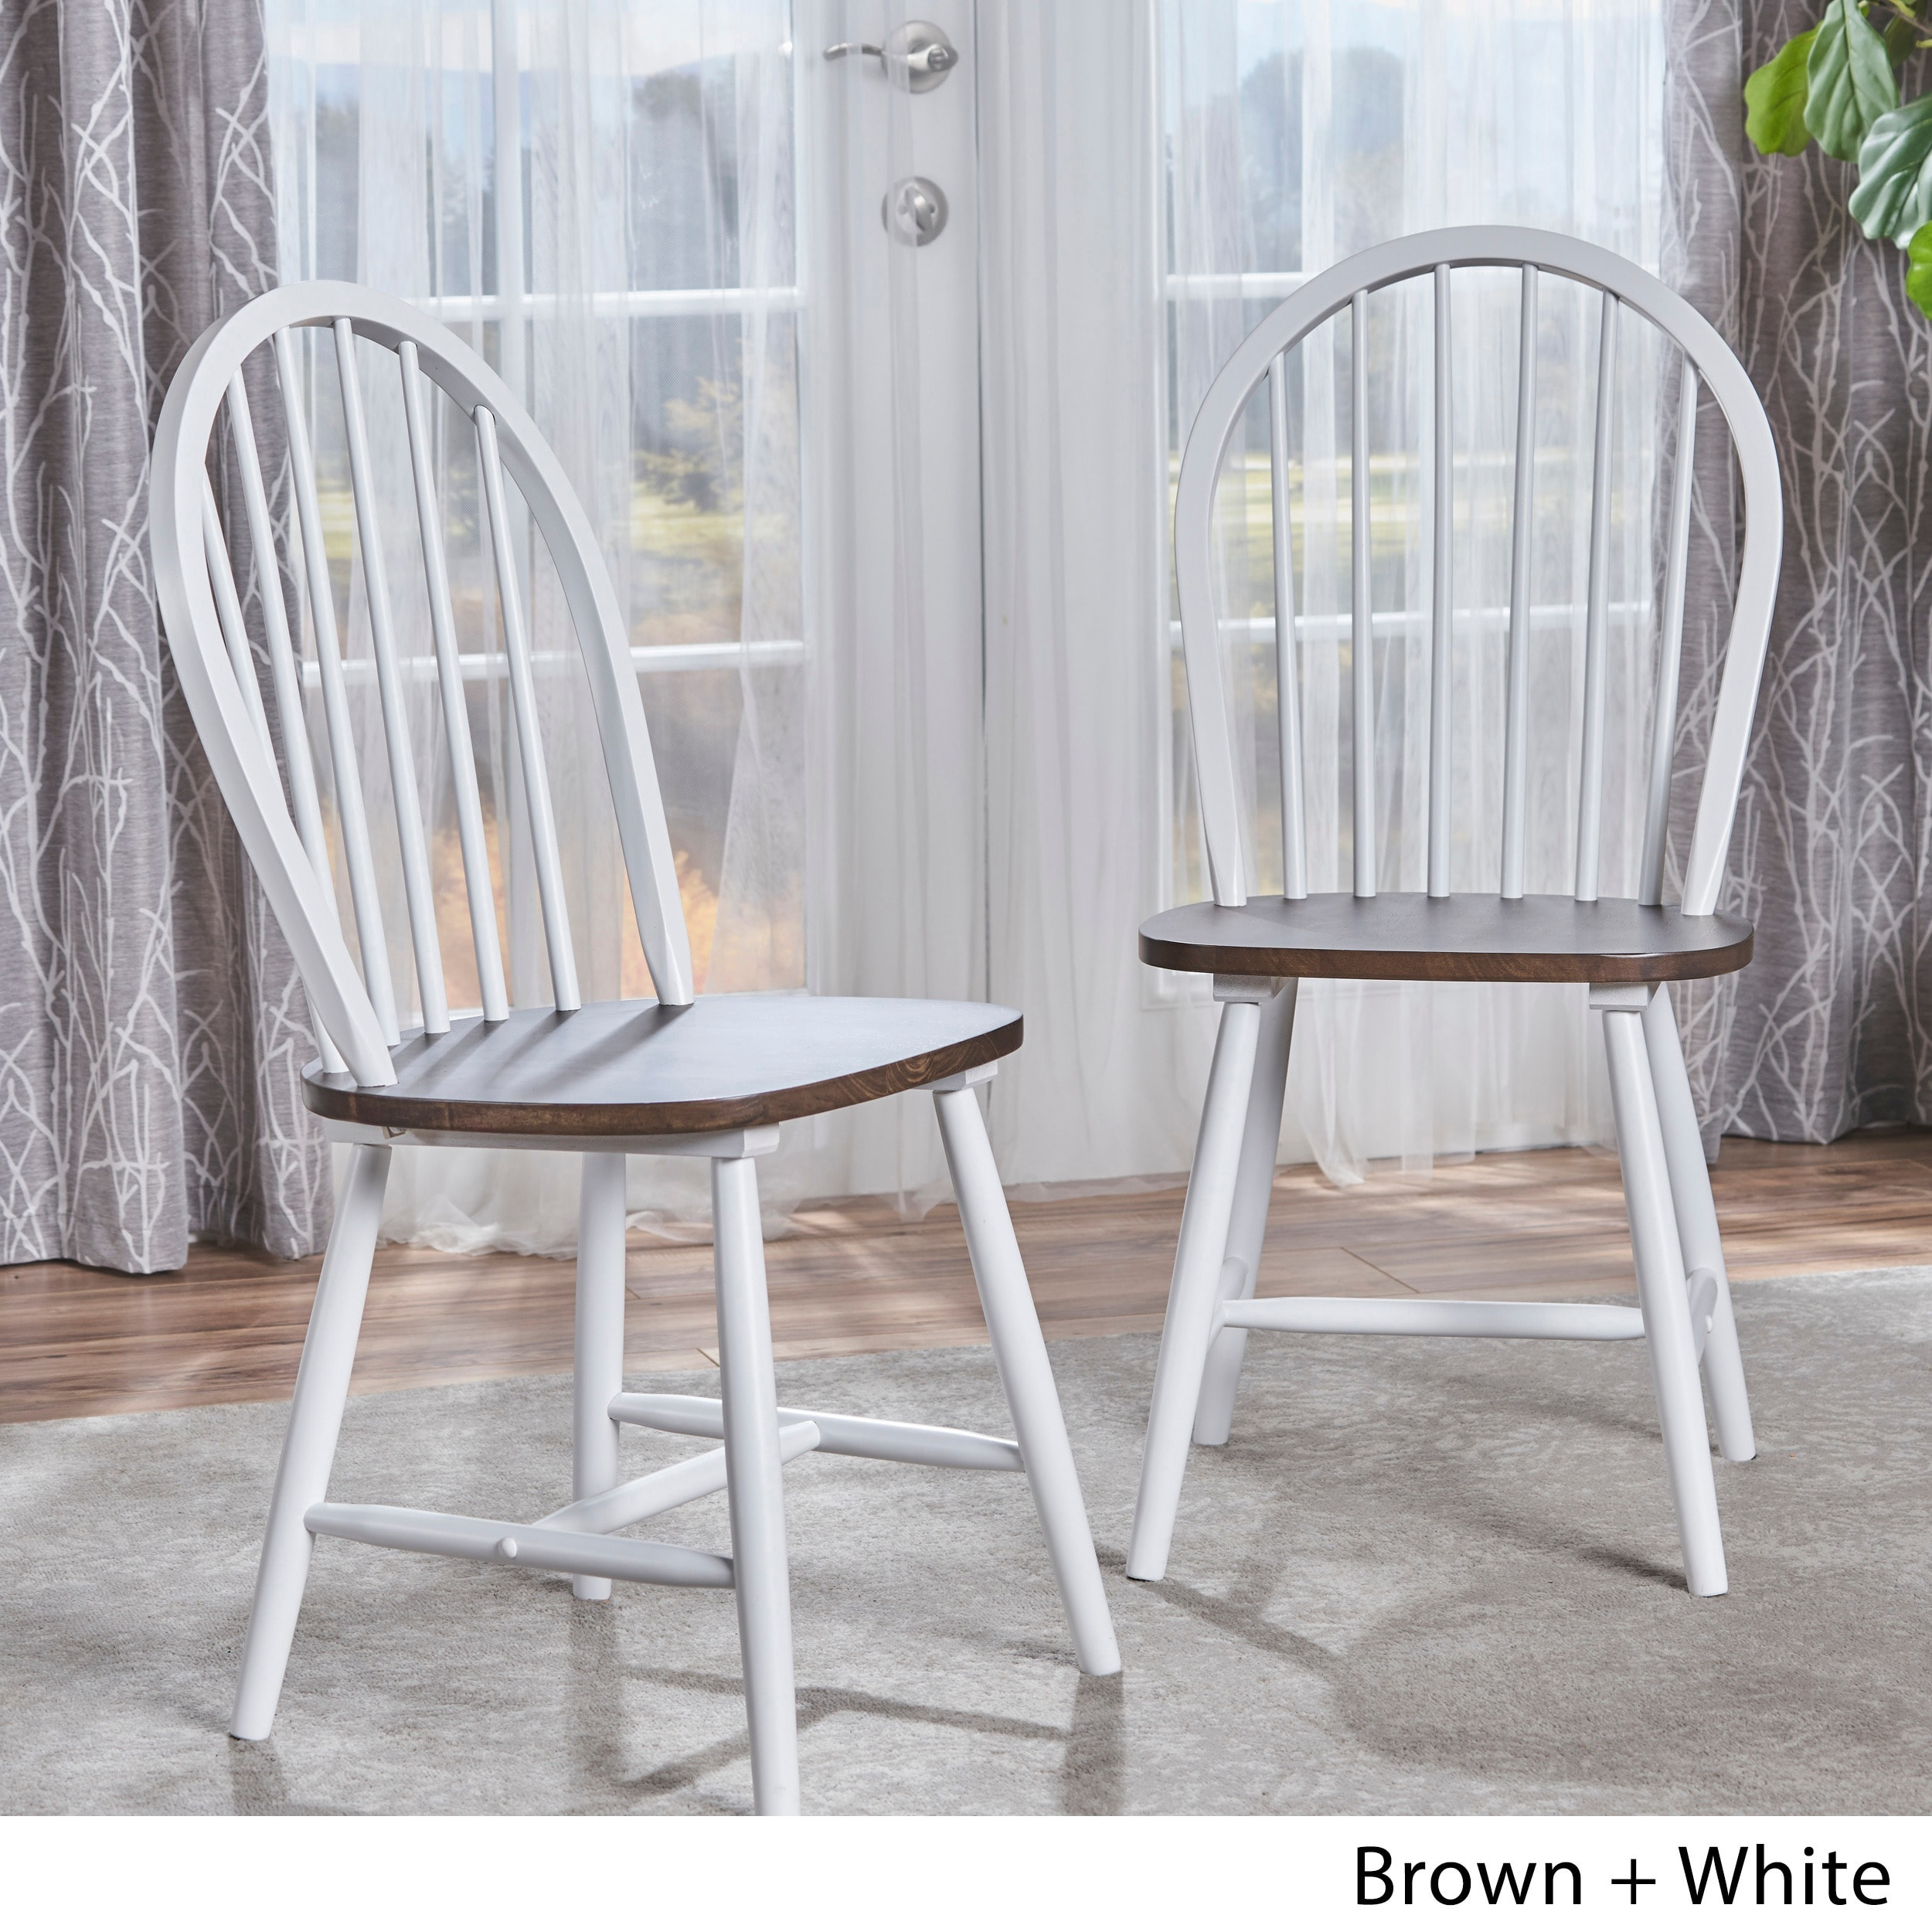 Christopher Knight Home Countryside High Back Spindle Wood Dining Chair (Set of 2) by